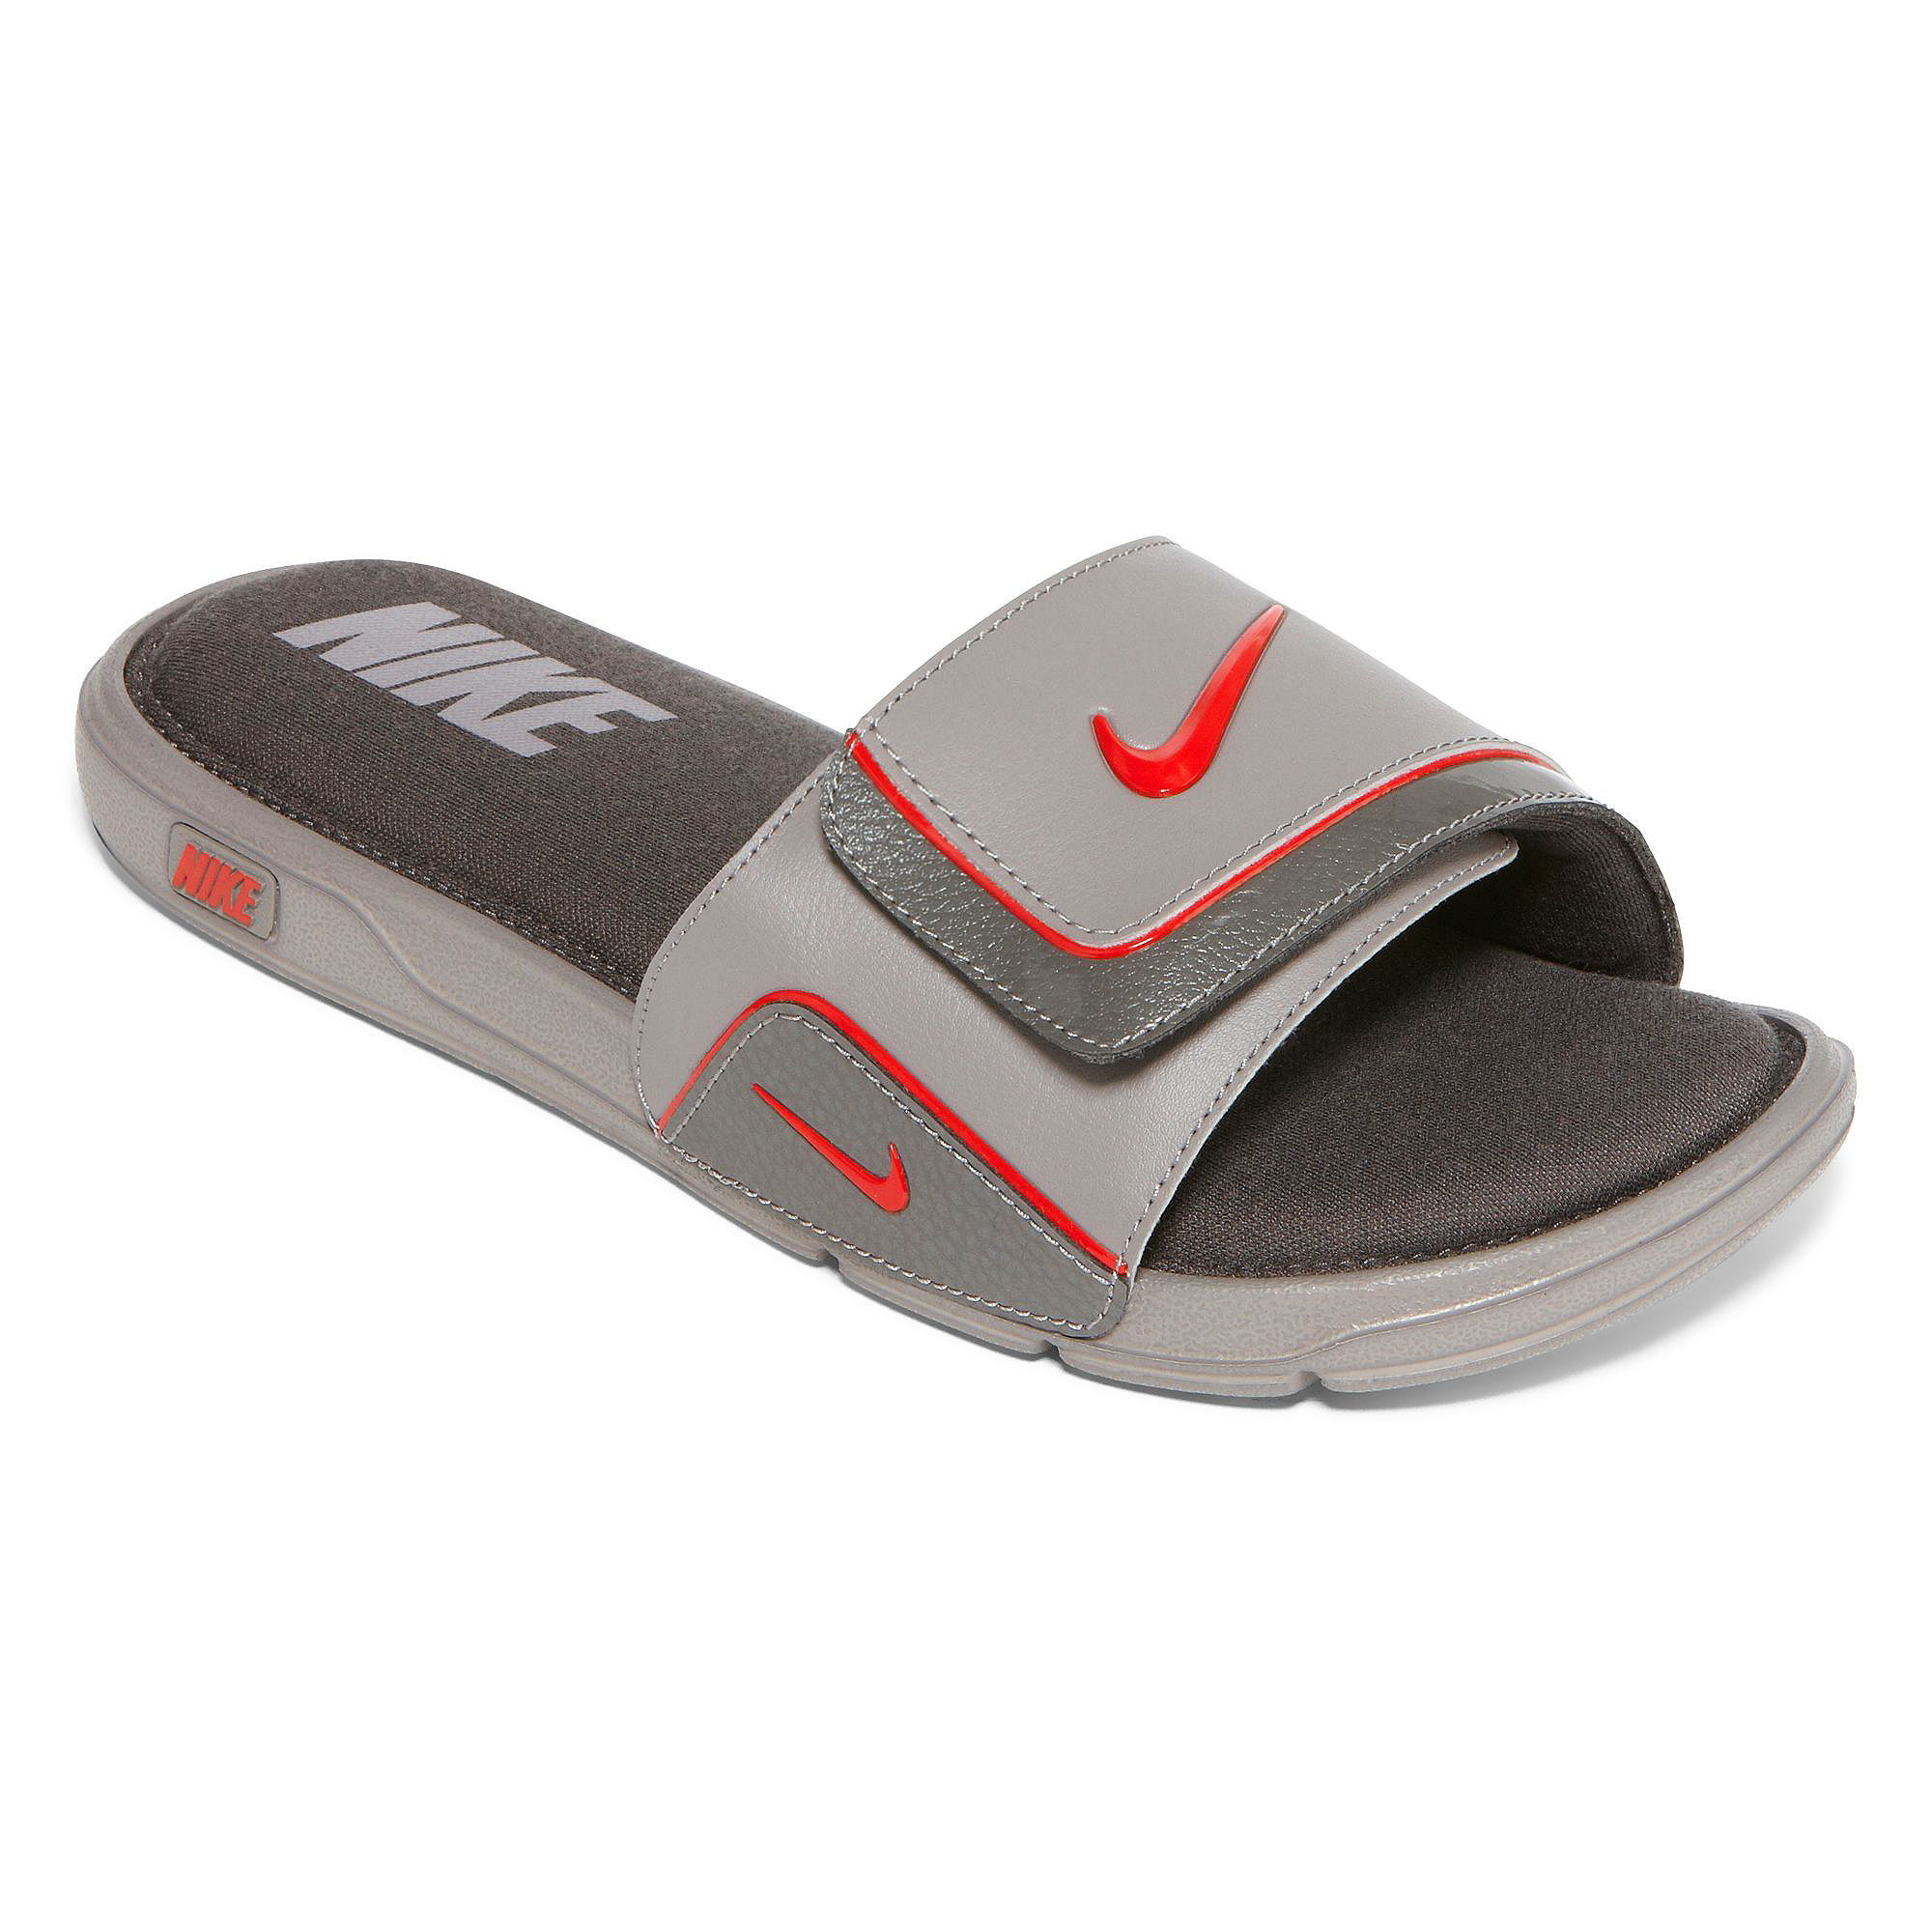 white blackmetallic silver men shoes nike p slide sandal winter outlet autumn shop comforter comfort autumnwinter metallic c us silverwhite black